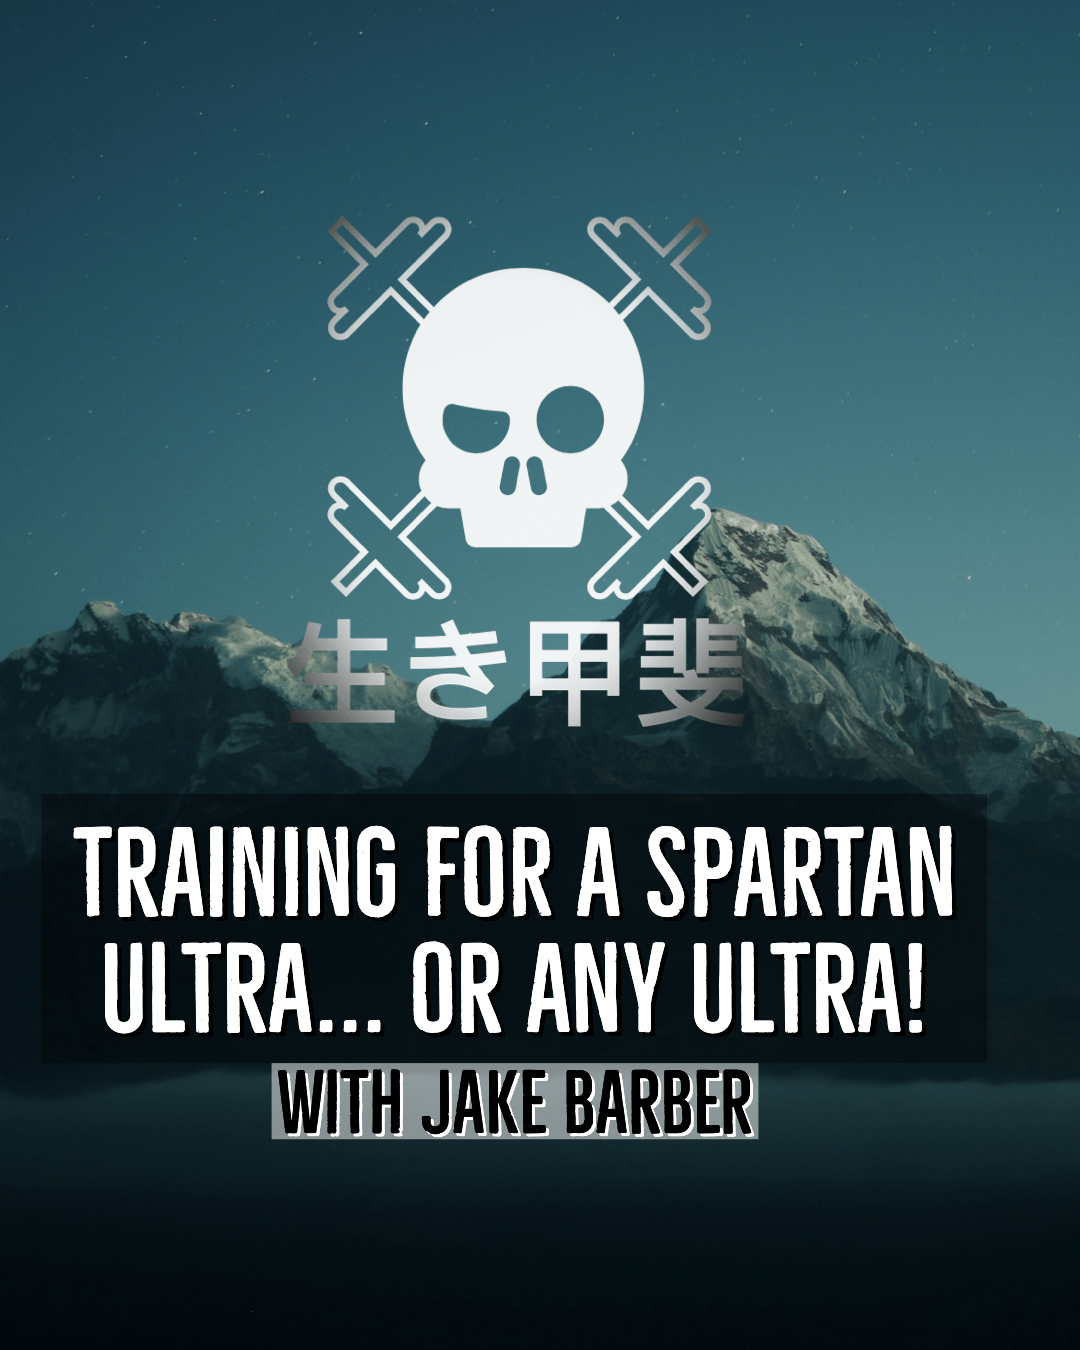 How To Train For A Spartan Ultra